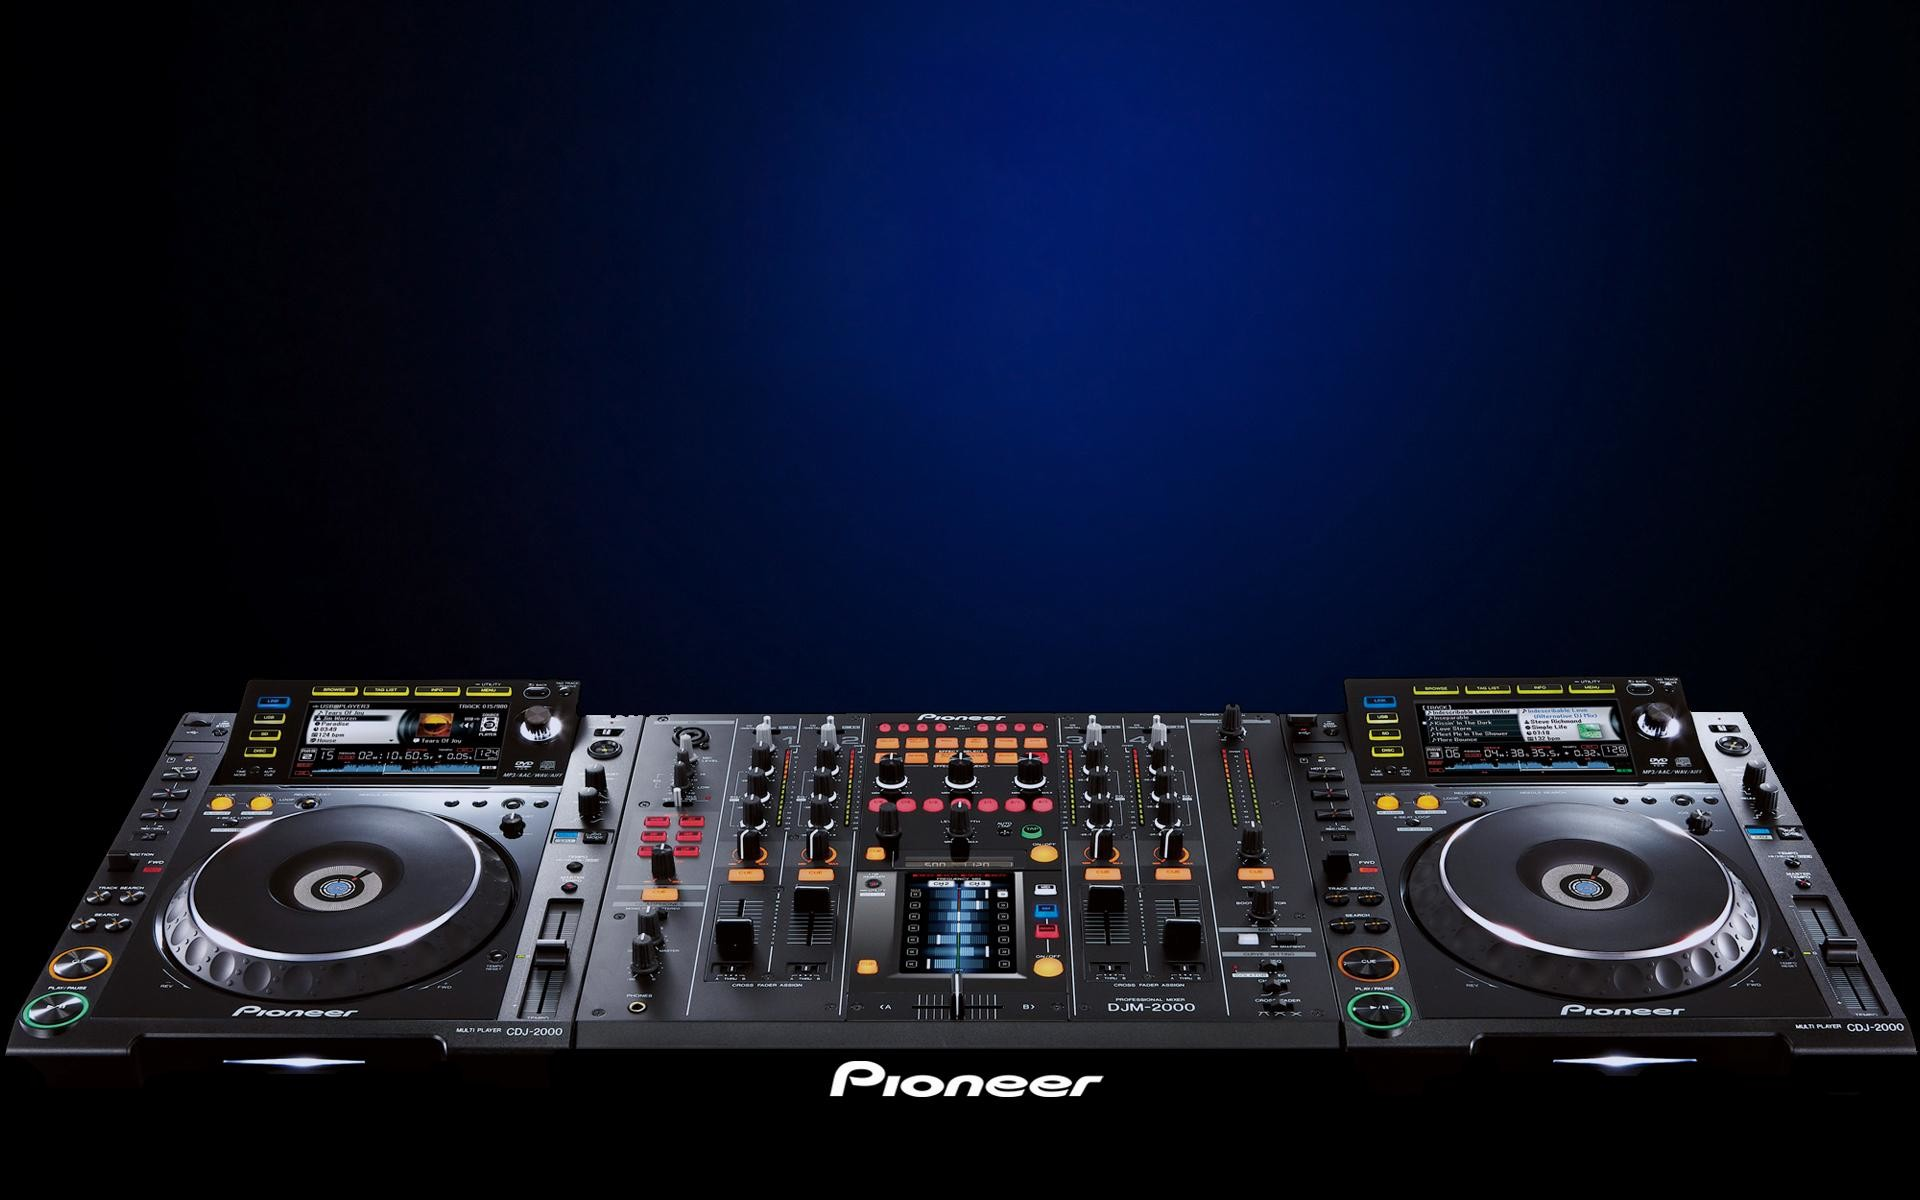 Pioneer dj cdj wallpaper HD | 1080×768 | Pinterest | Wallpapers | Beautiful  Wallpapers | Pinterest | Pioneer cdj 2000 and Wallpaper